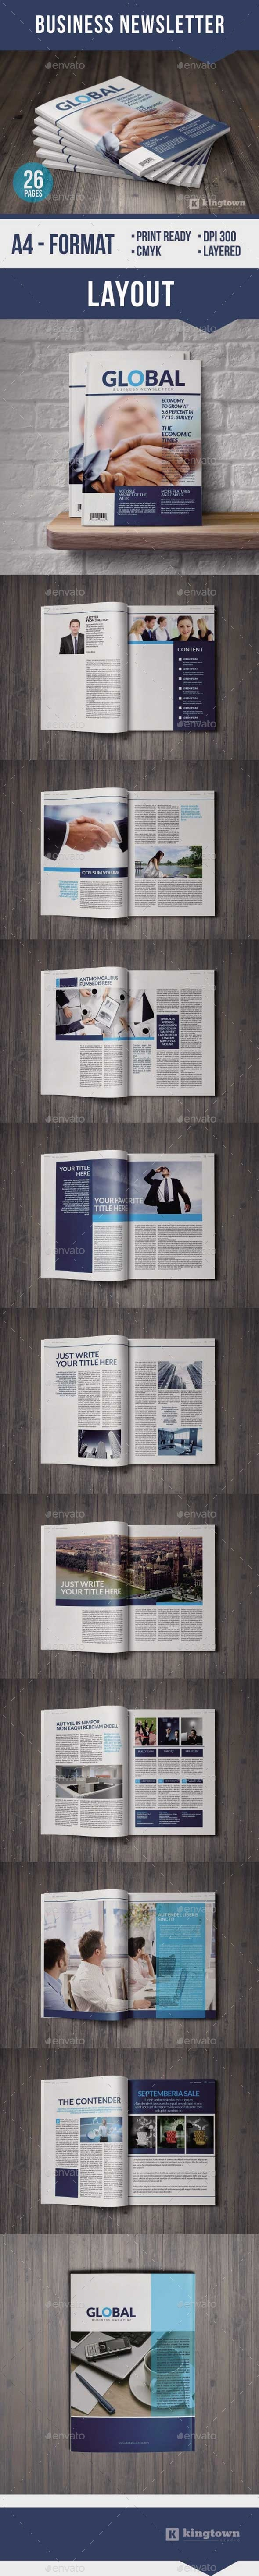 GraphicRiver Business Newsletter Vol 1 8902364